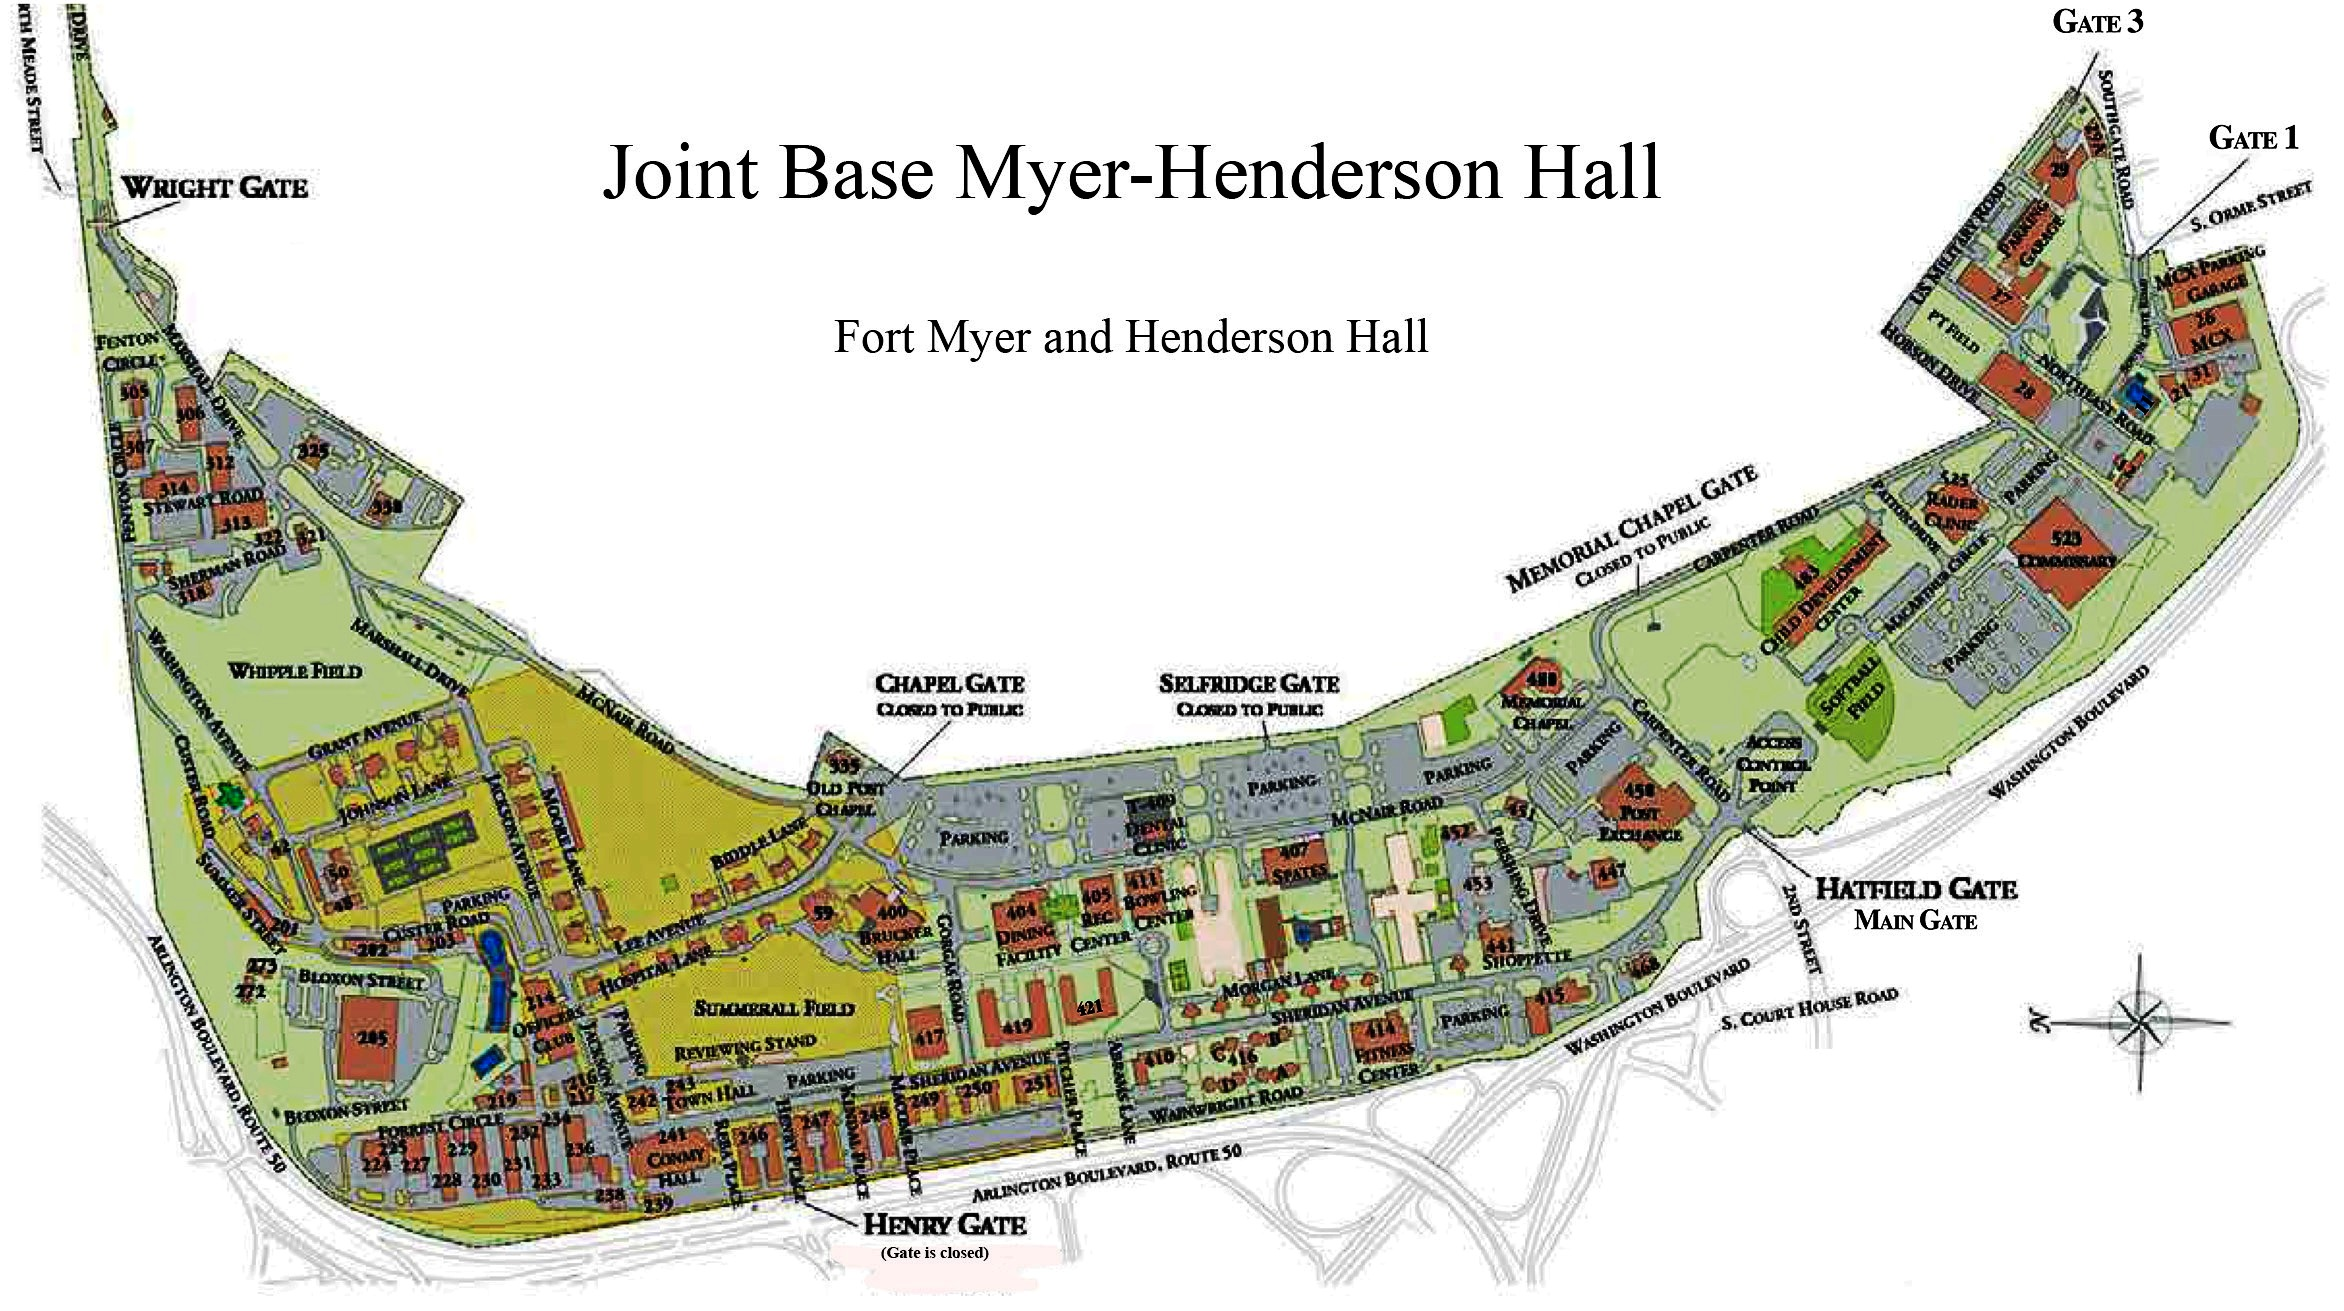 Map Of Fort Myers File:Joint Base Myer Henderson Hall map.   Wikimedia Commons